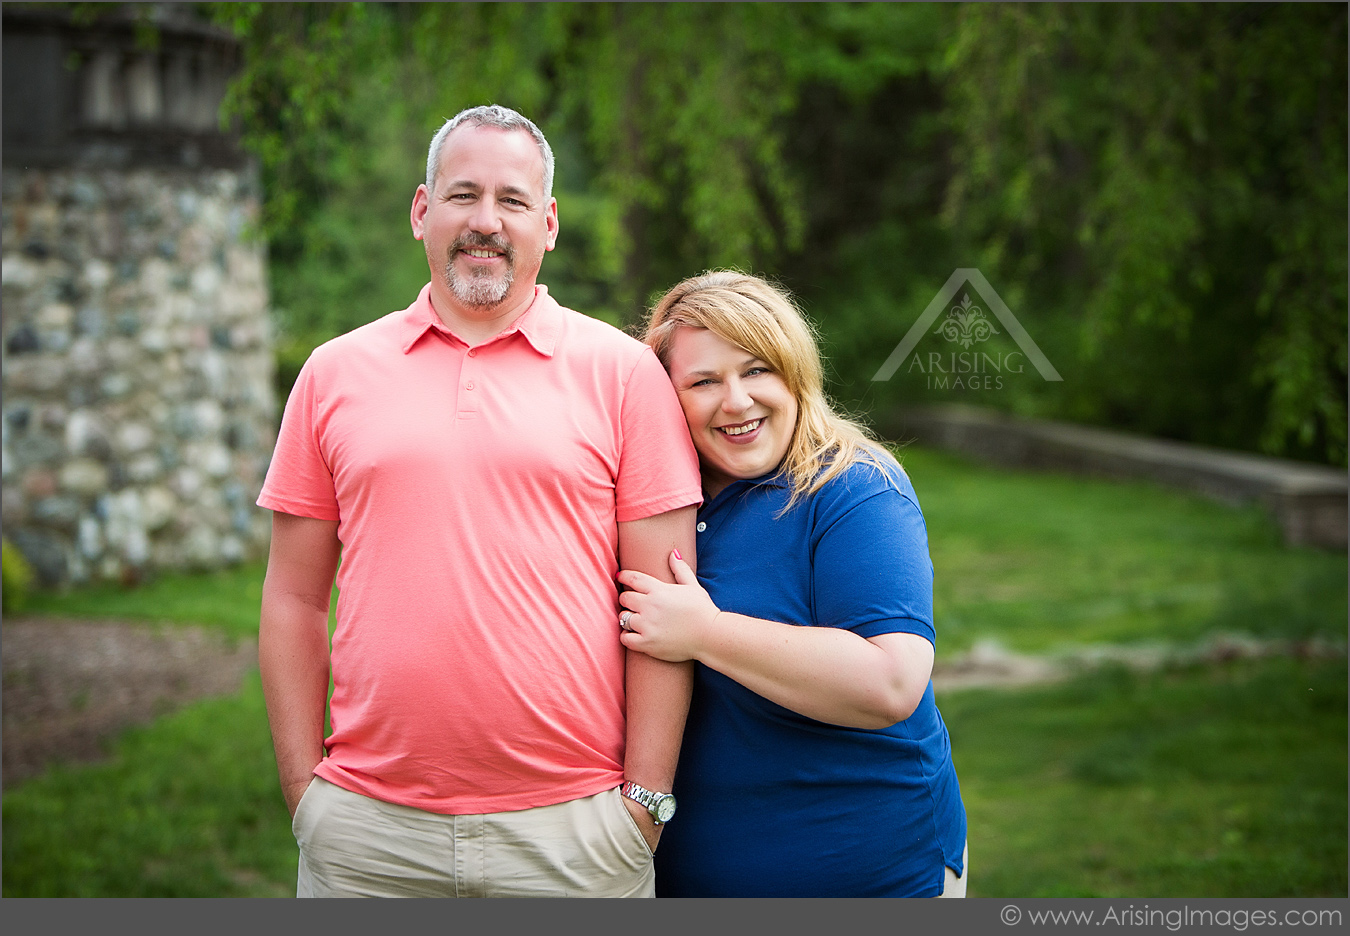 bloomfield hills michigan family photographer